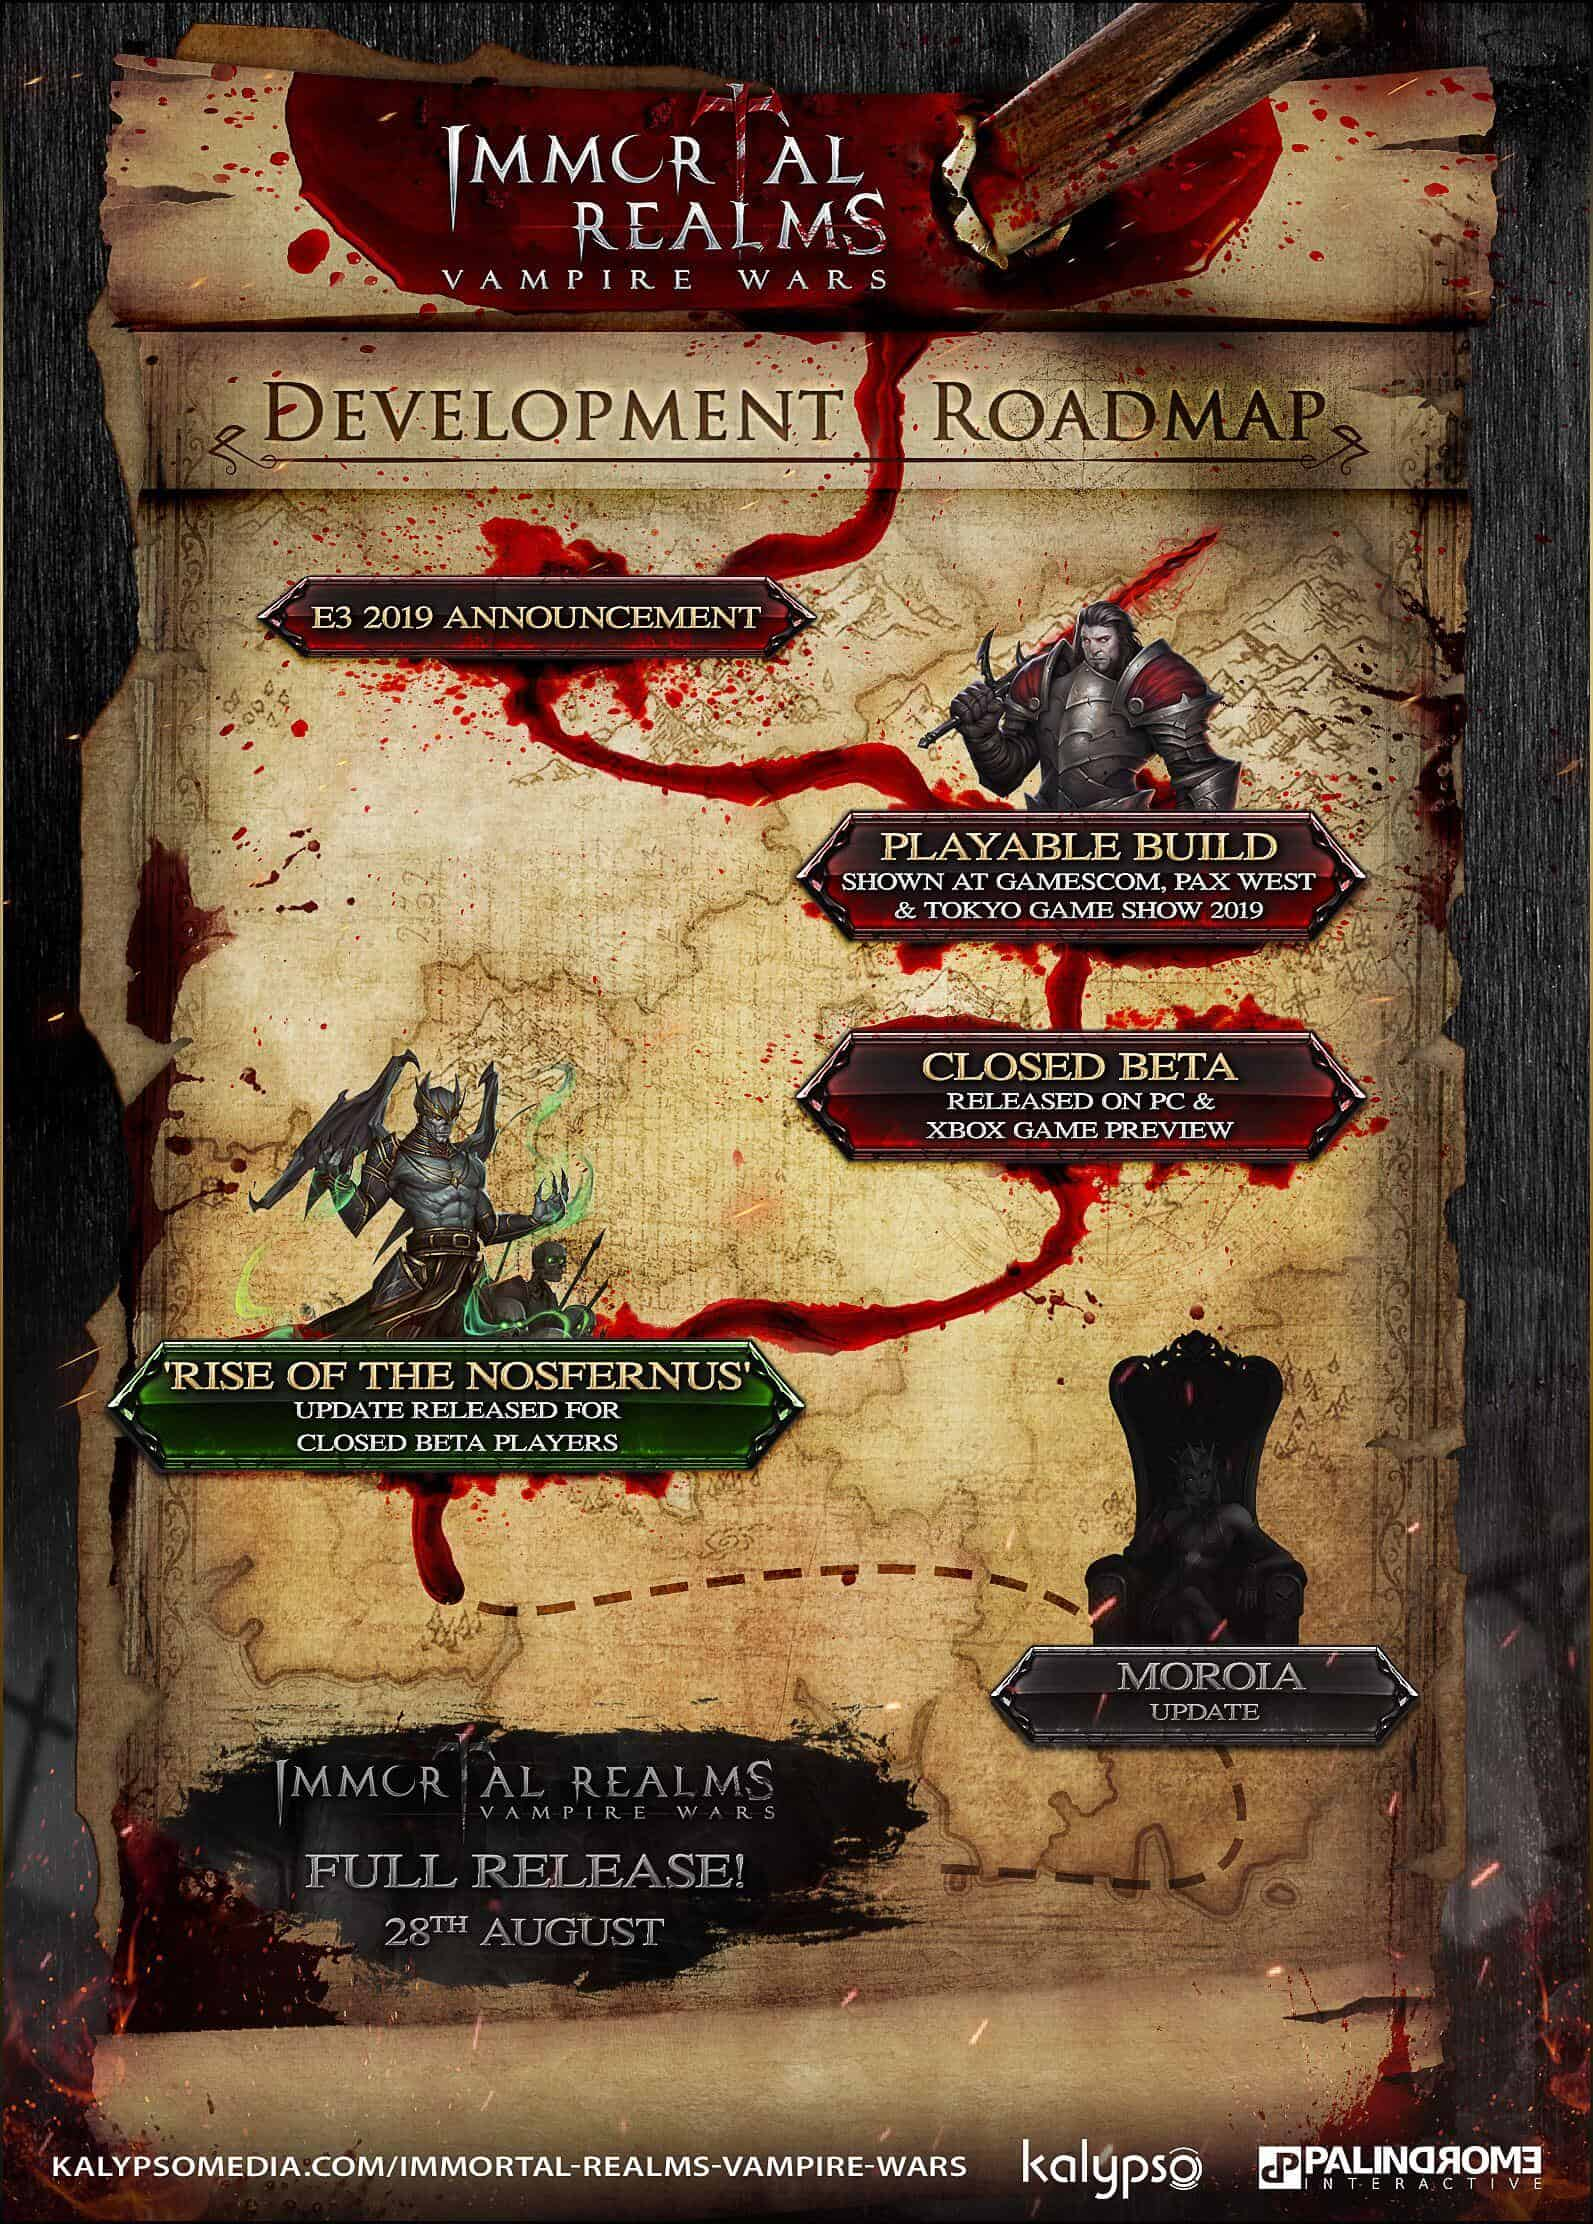 Immortal Realms Vampire Wars Roadmap